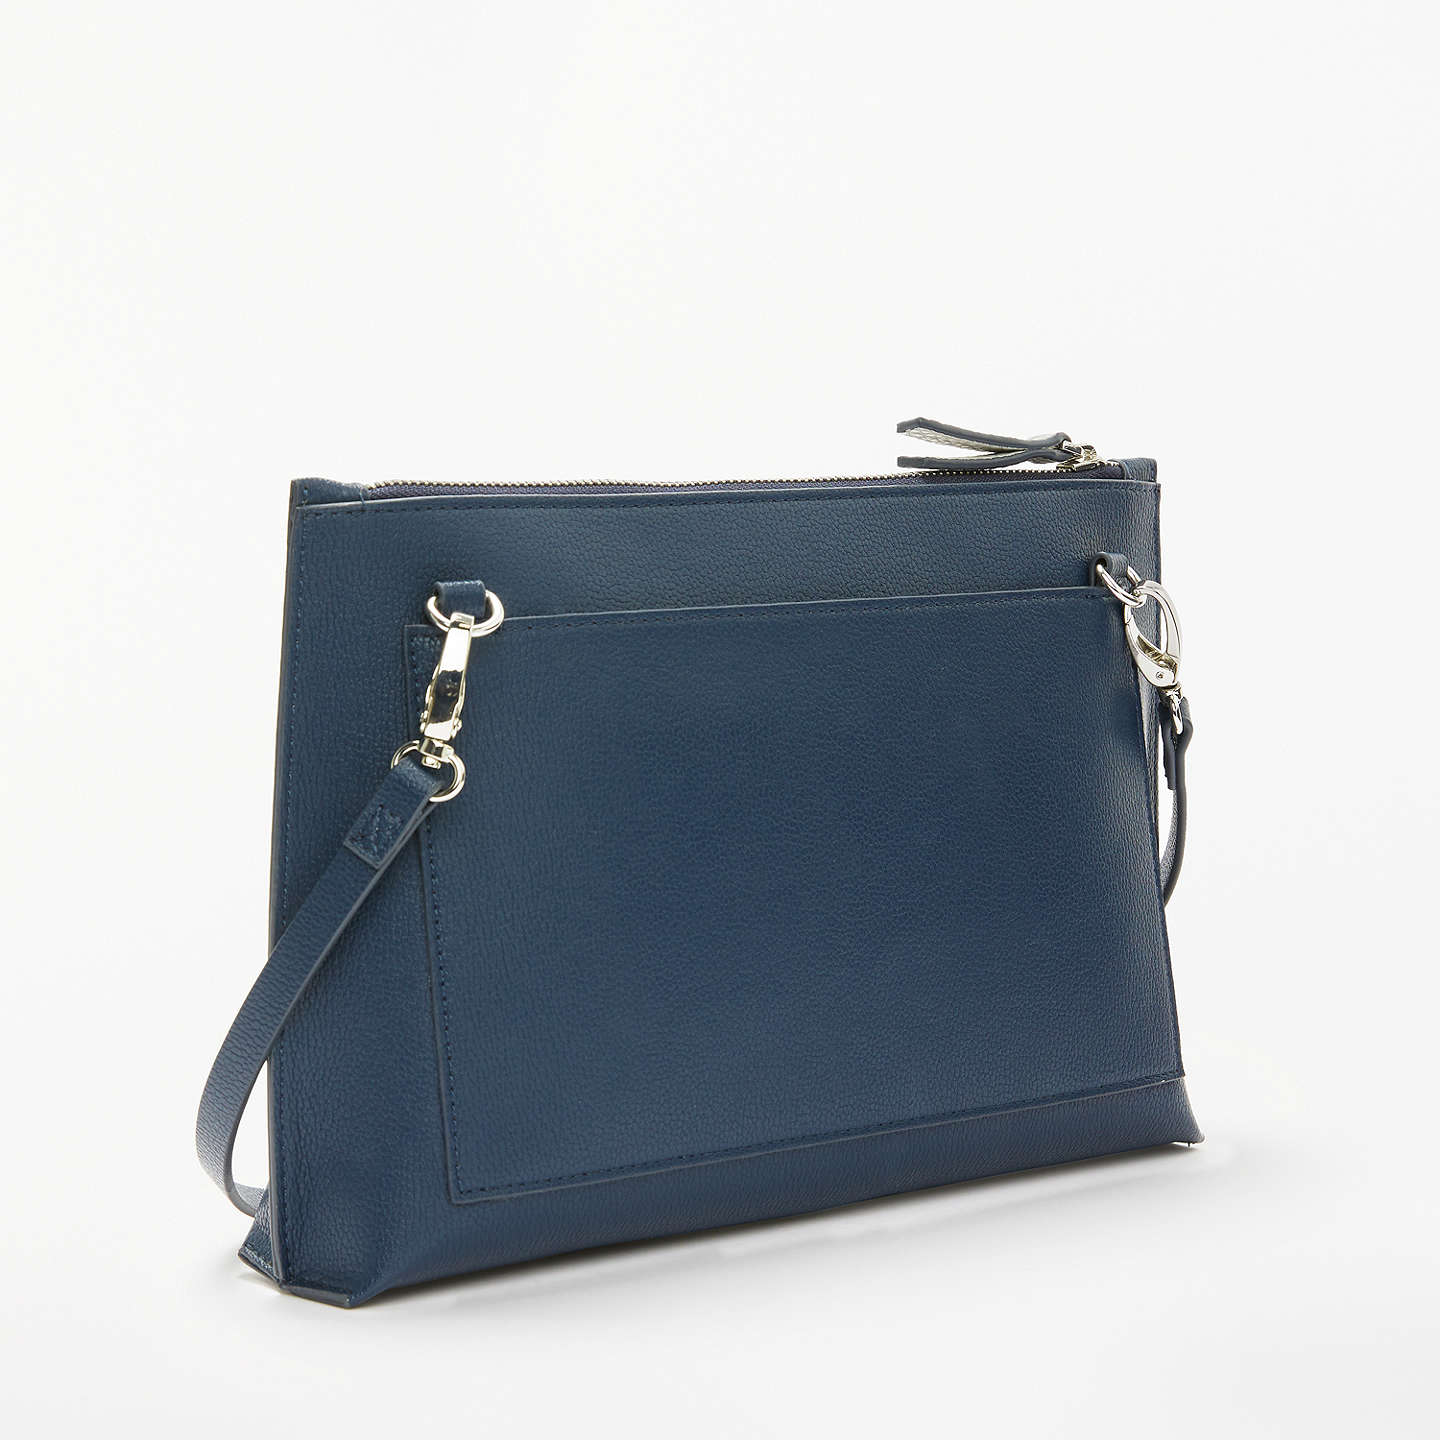 BuyKin by John Lewis Sia Clutch Bag, Navy Online at johnlewis.com